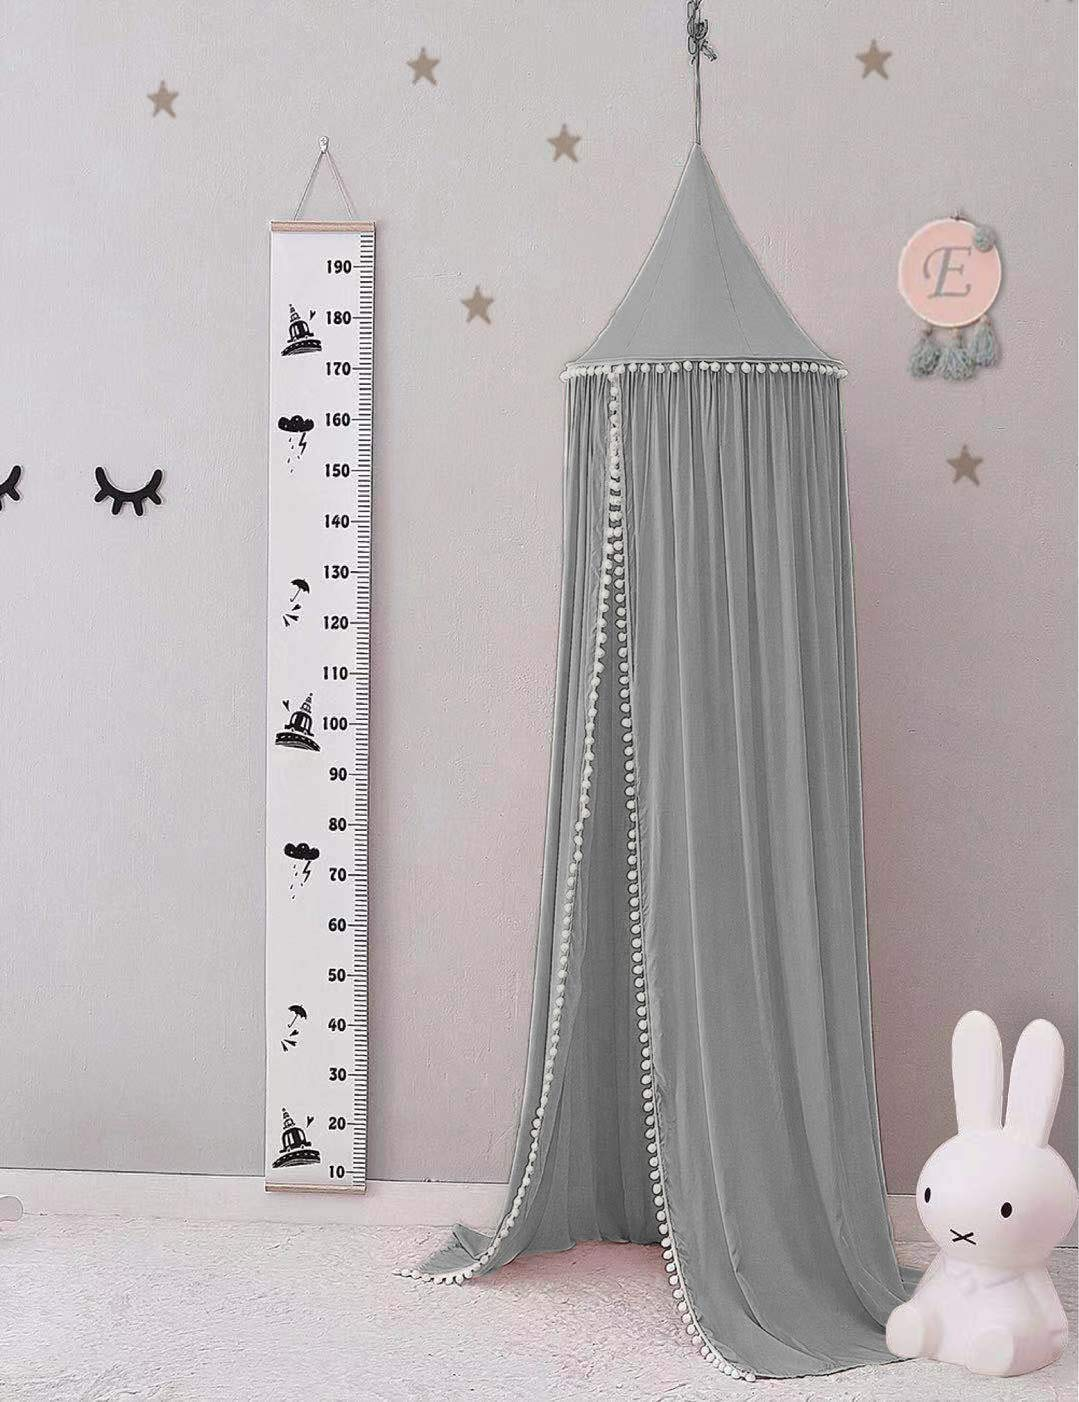 Pampido Baby Bed Canopy Cotton Mosquito Net for Bedroom Nursery Play and Reading Time Baby Insect Protection Grey Girls Blue Height 240 cm White Pink